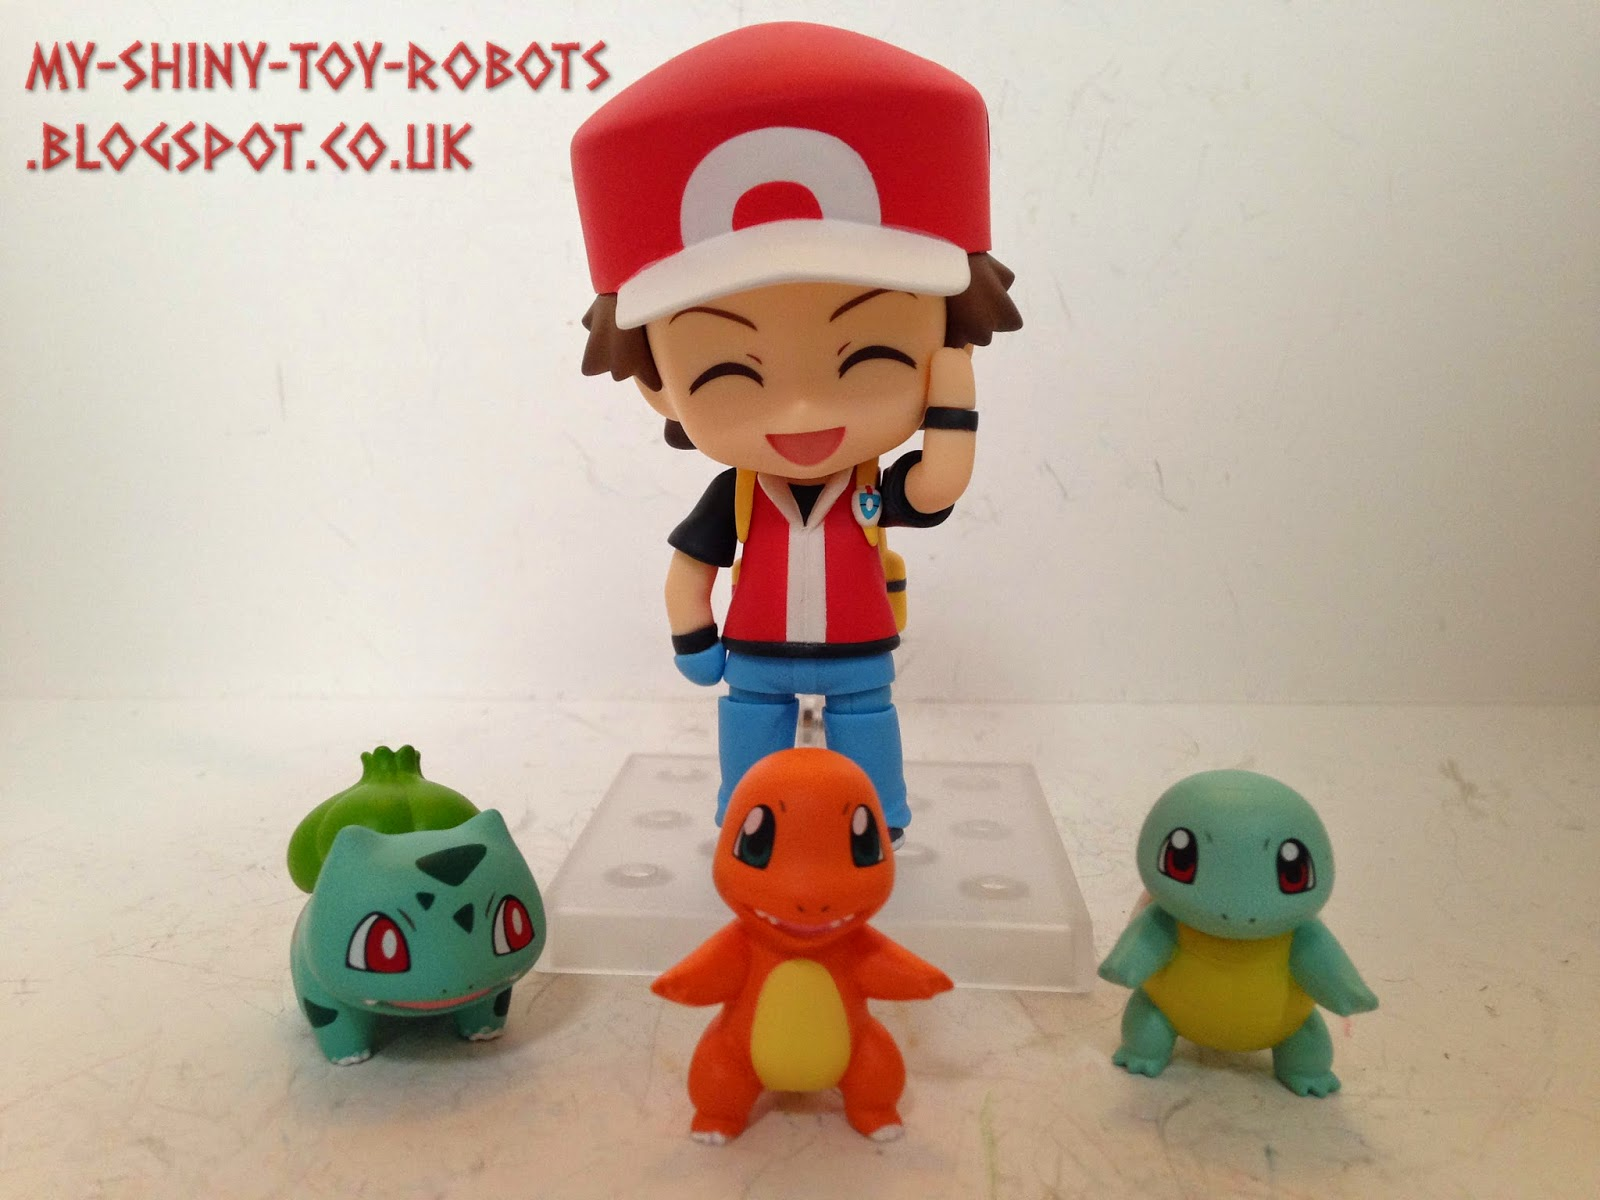 The included Kanto starters